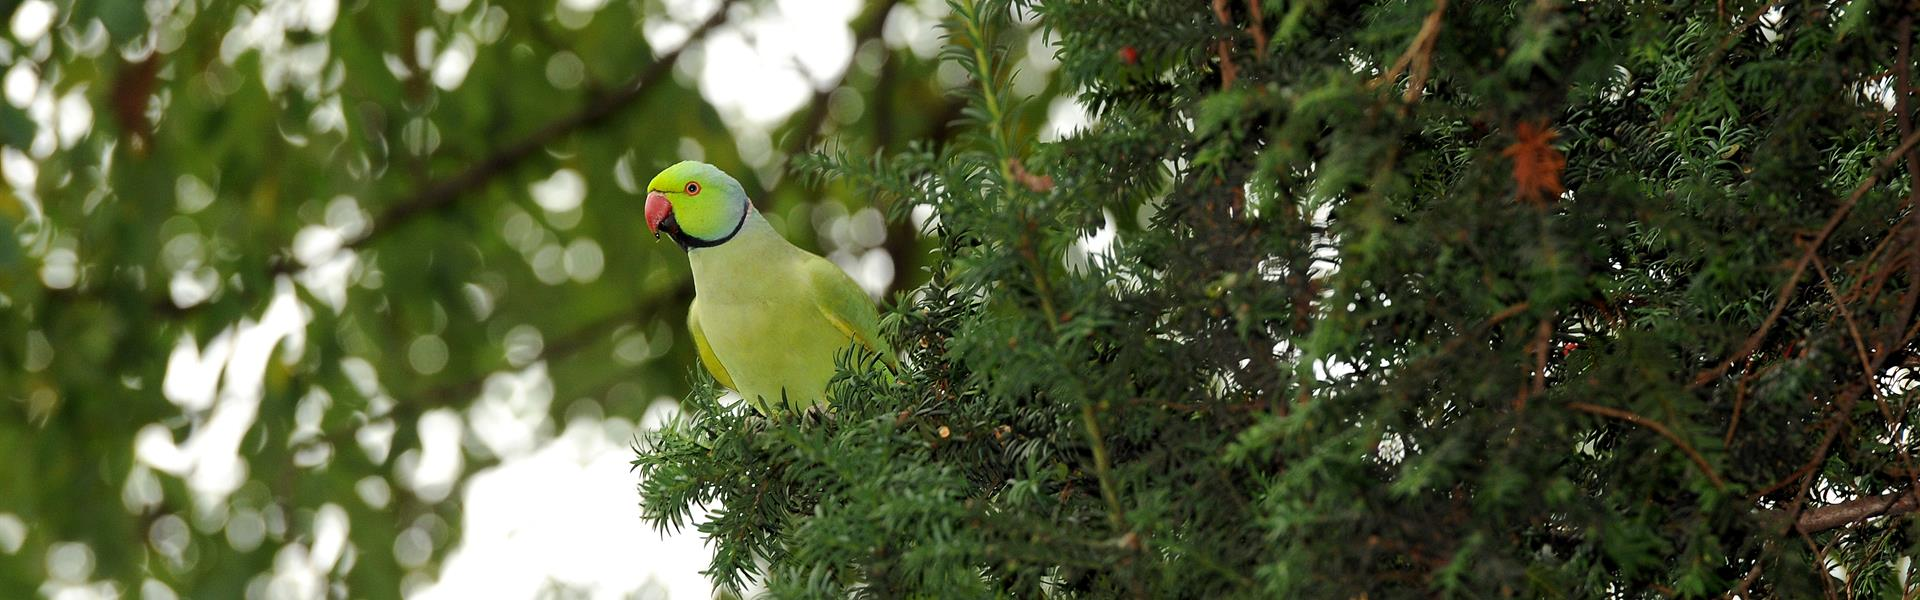 Population-of-refugee-parrots-increases